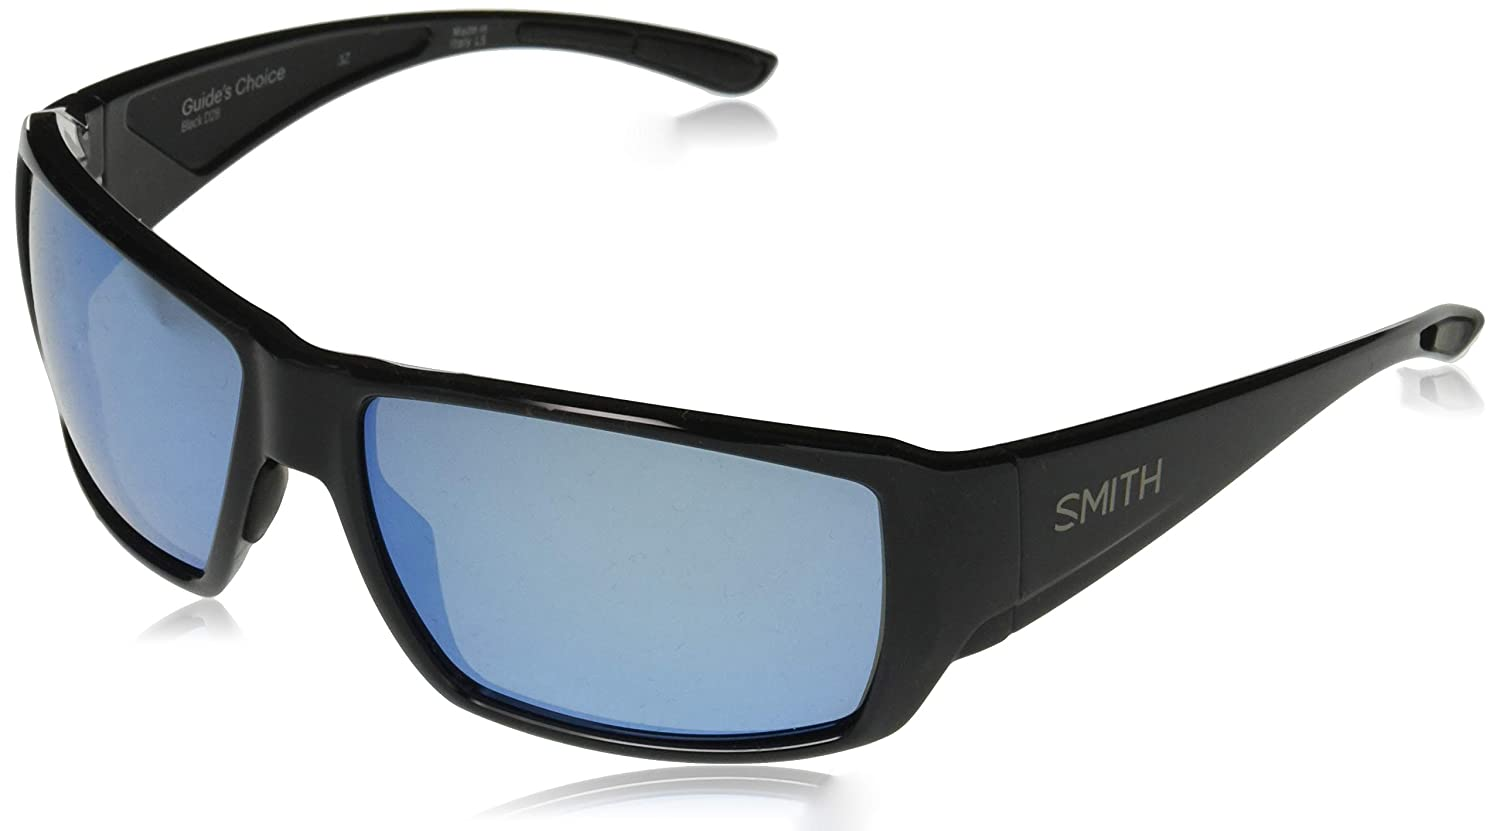 045e8eabff Amazon.com  Smith Optics Guides Choice Sunglasses